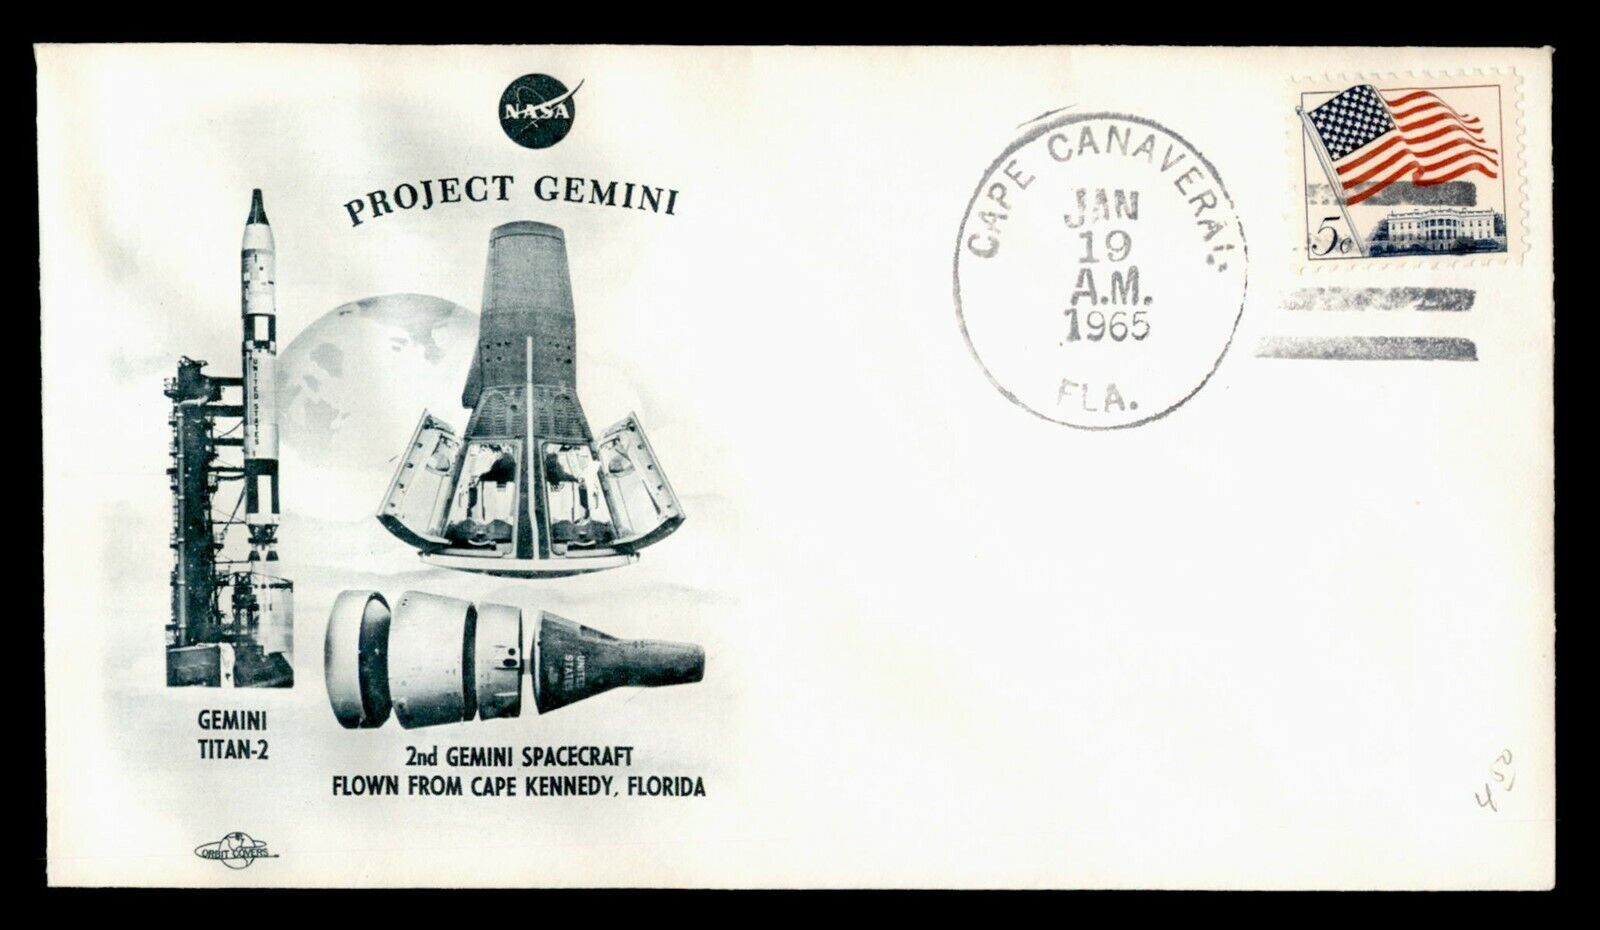 DR WHO 1965 PROJECT GEMINI TITAN 2 SPACE CRAFT NASA MISSION CANAVERAL FL C212196 - $1.94